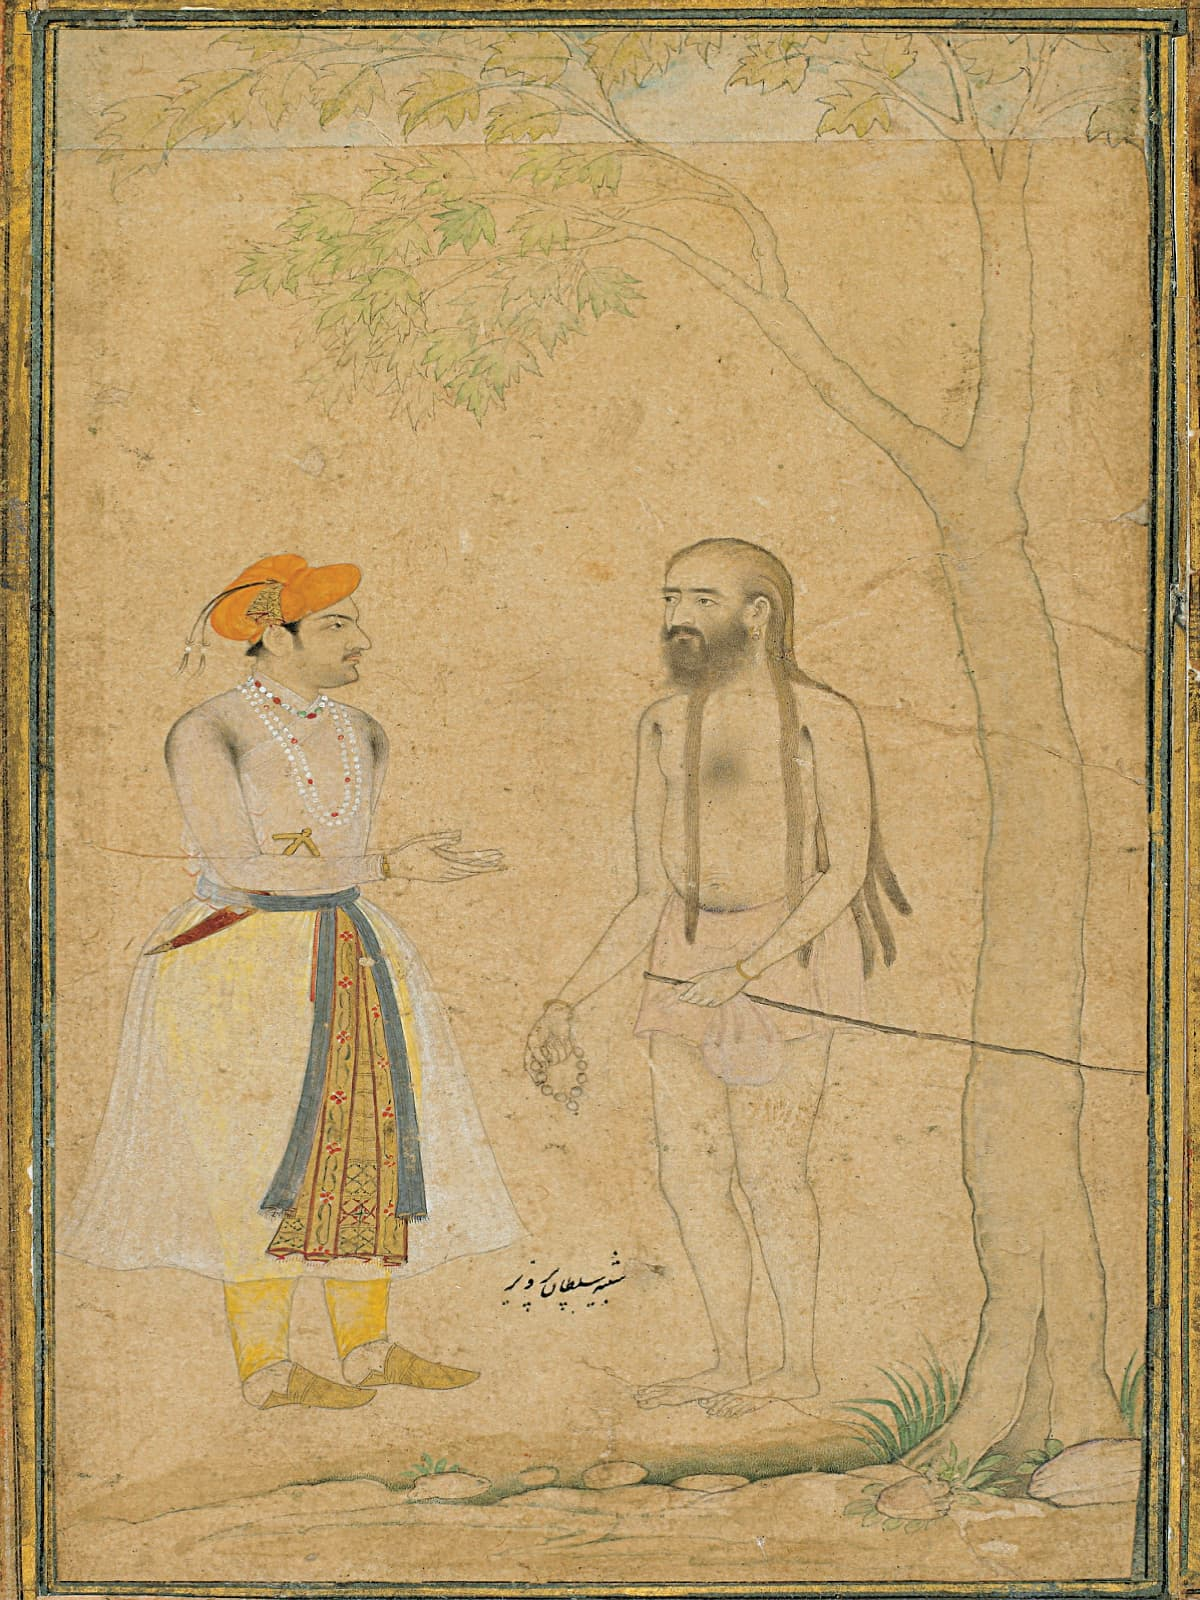 Mughal prince Parvez talking to a holy man | Courtesy purchase — Charles Lang Freer Endowment